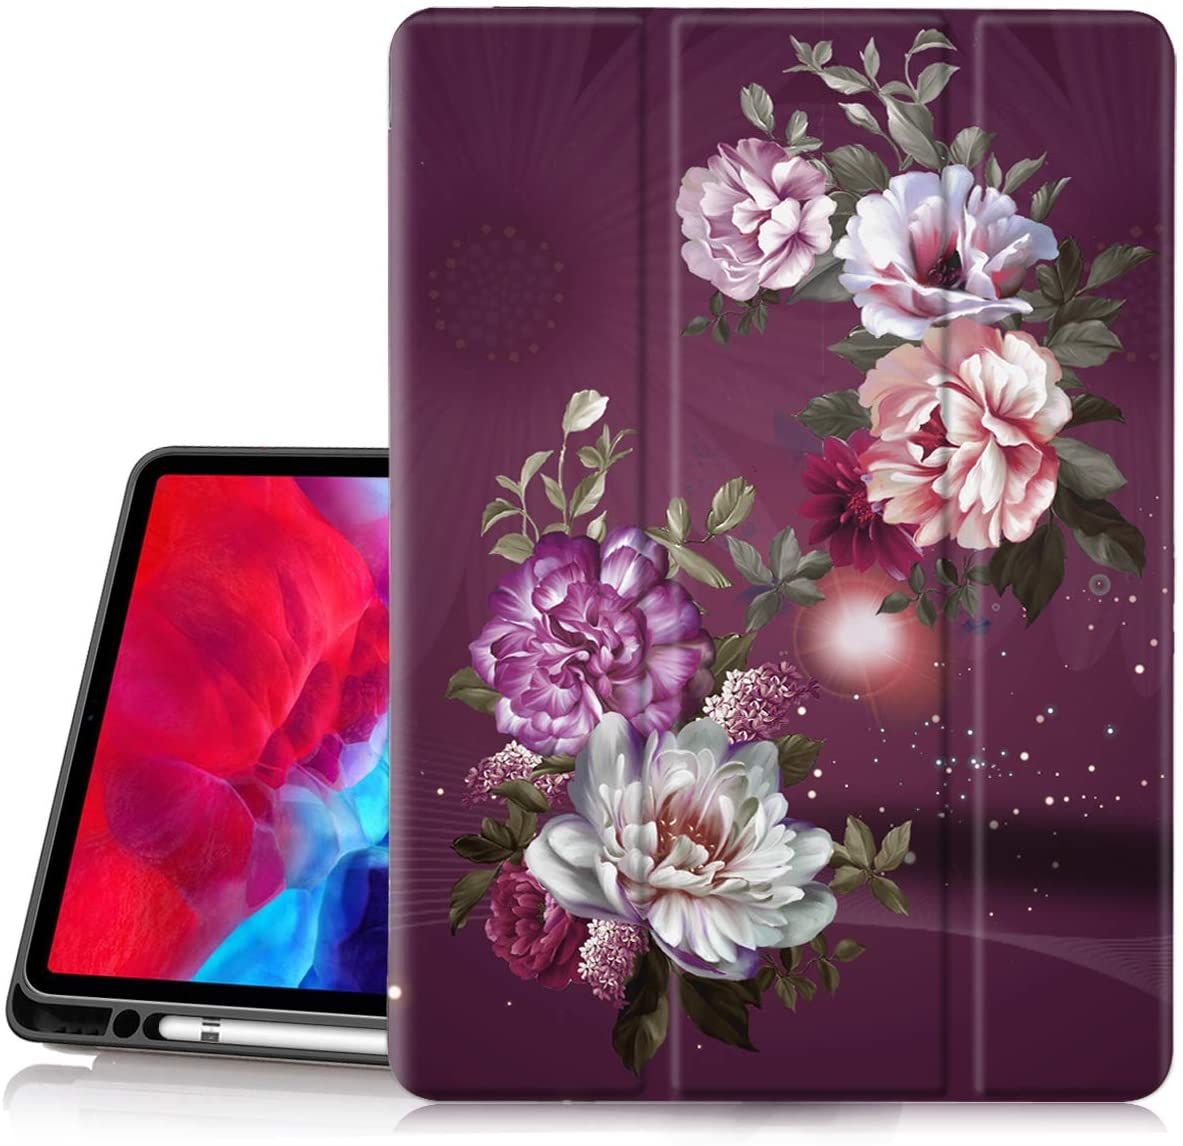 Hocase iPad Pro 12.9 2020 Case, Trifold Folio Smart Stand Case with Pencil Holder, Auto Sleep/Wake Feature, Soft TPU Back Cover for iPad Pro 12.9-inch 4th & 3rd Generation - Burgundy Flowers